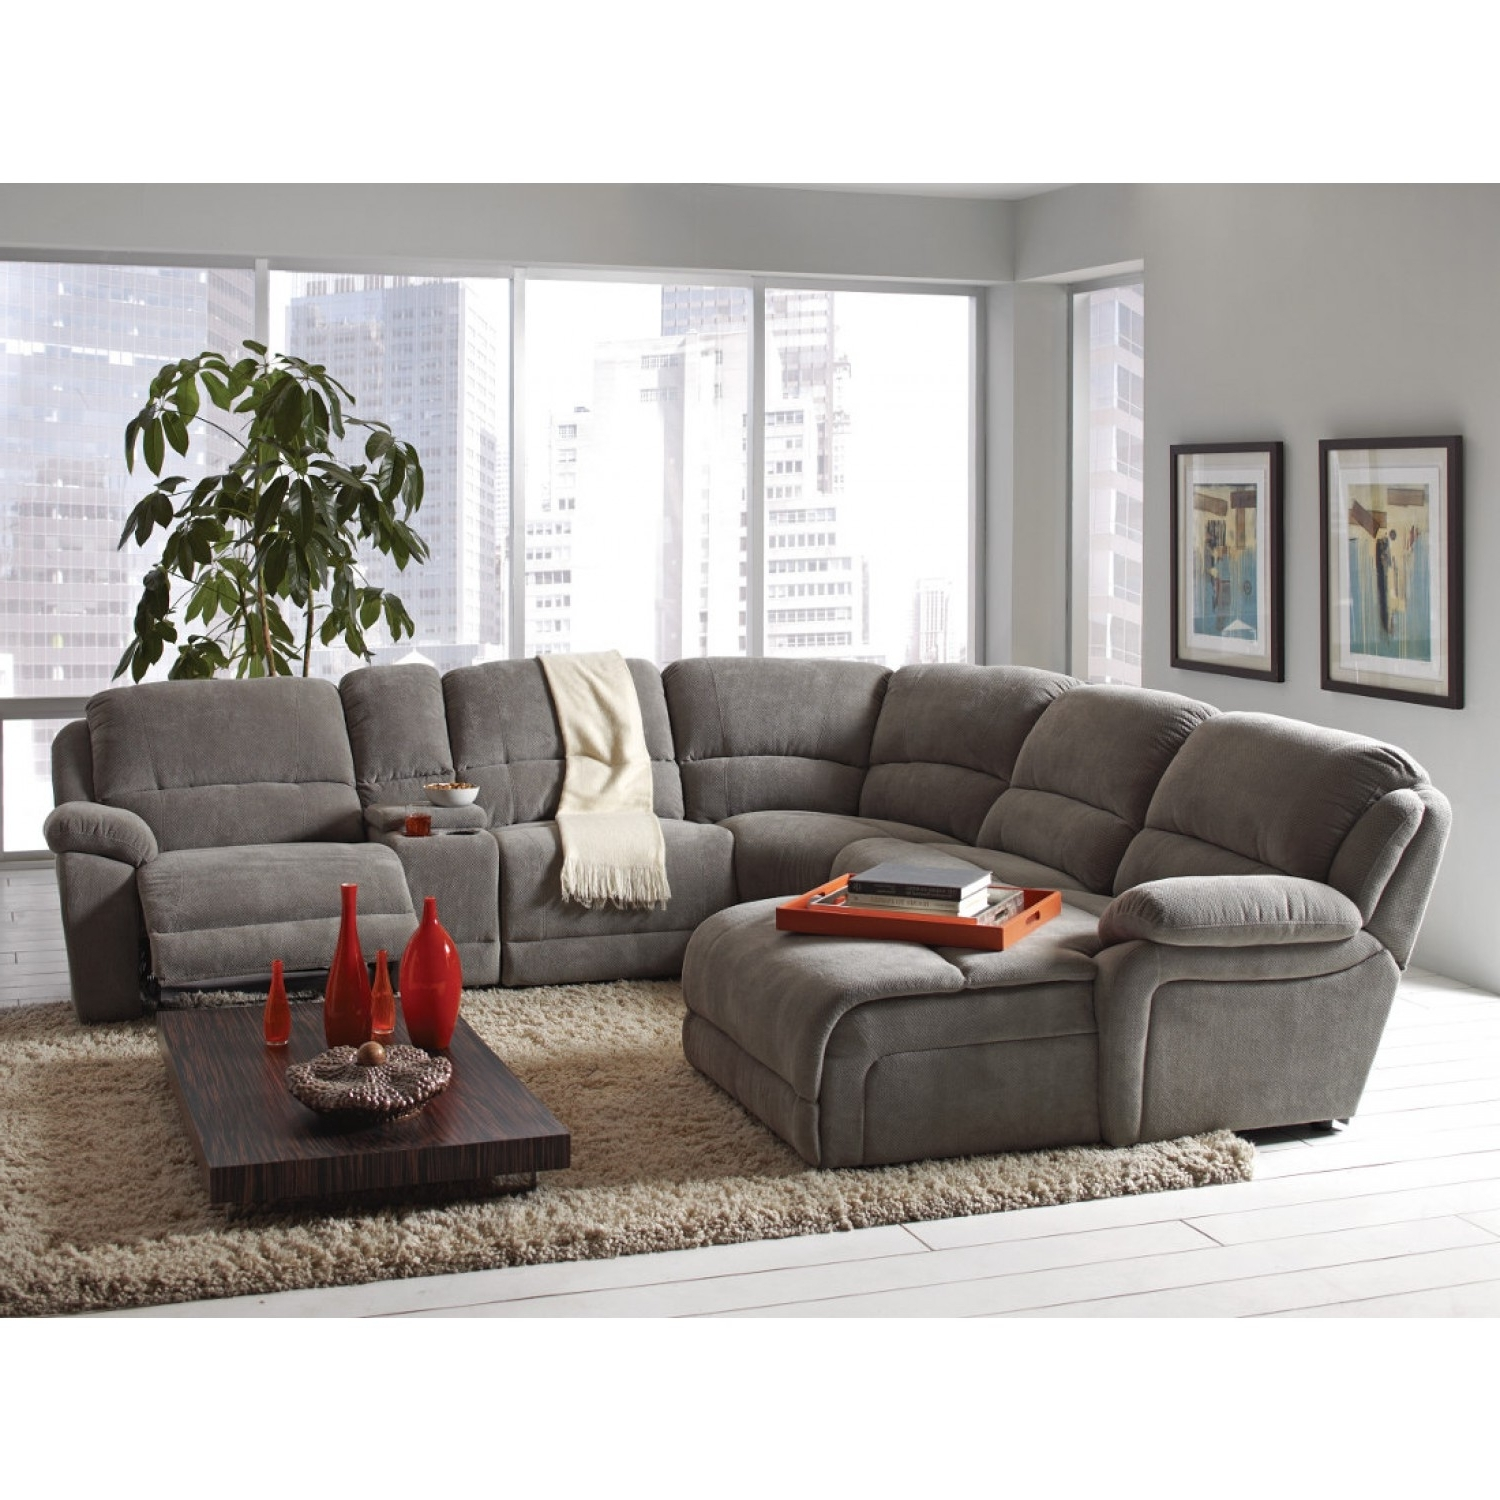 Widely Used Coaster Mackenzie Silver 6 Piece Reclining Sectional Sofa With With Kansas City Sectional Sofas (View 8 of 15)